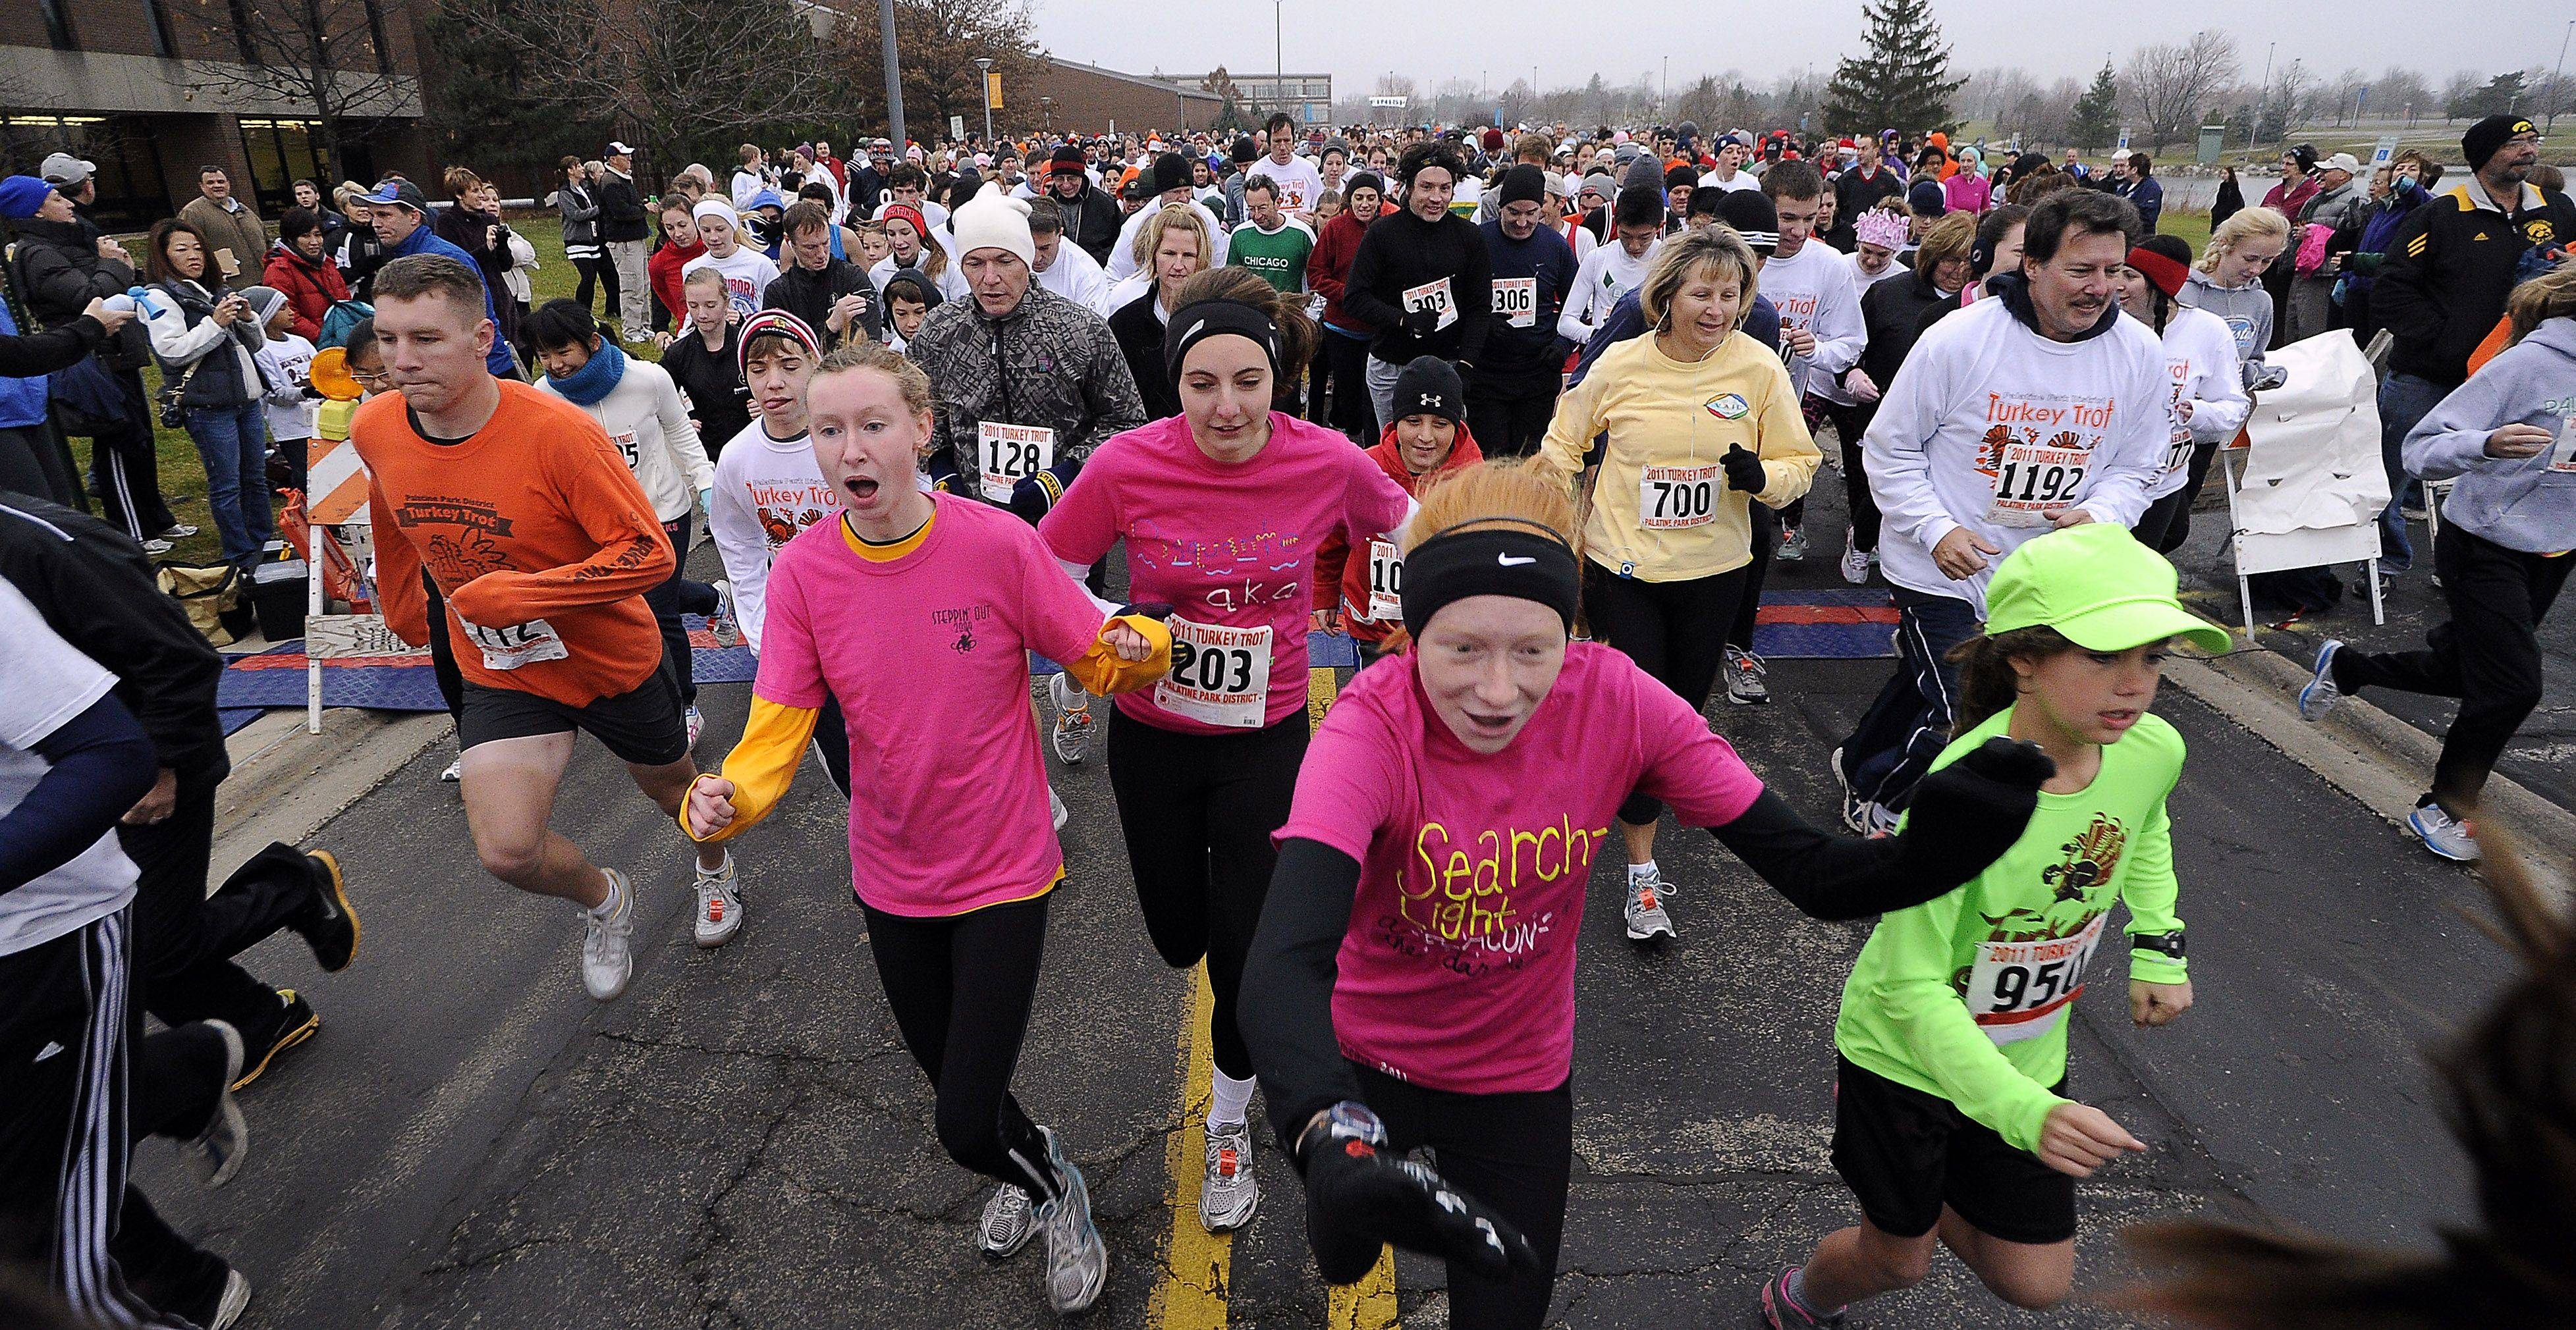 The Palatine Turkey Trot two-mile race begins at Harper College.